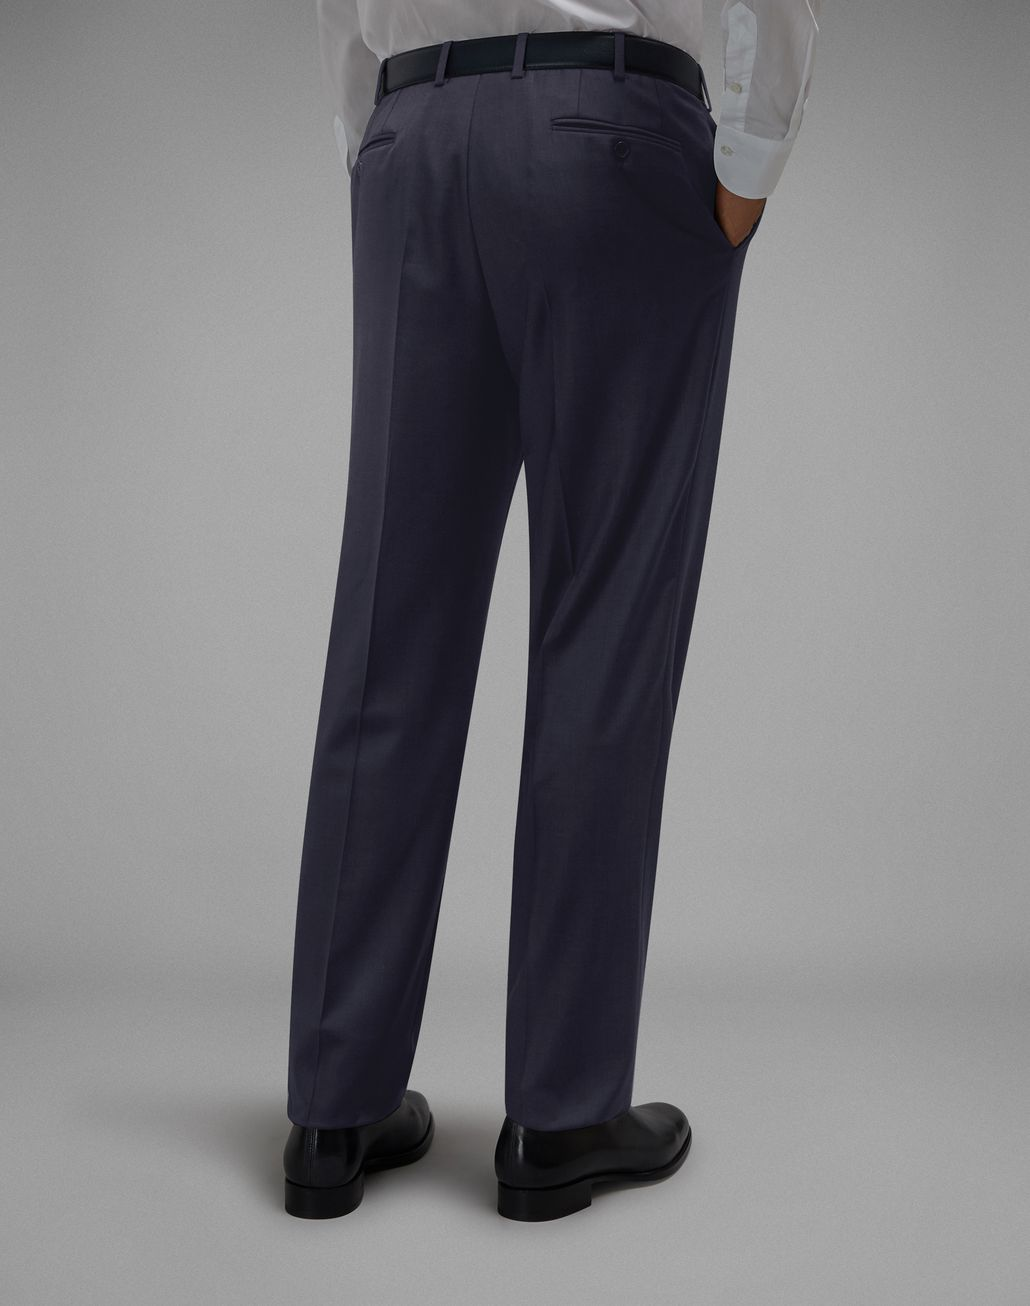 BRIONI 'Essential' Navy Blue Tigullio Trousers Trousers [*** pickupInStoreShippingNotGuaranteed_info ***] d